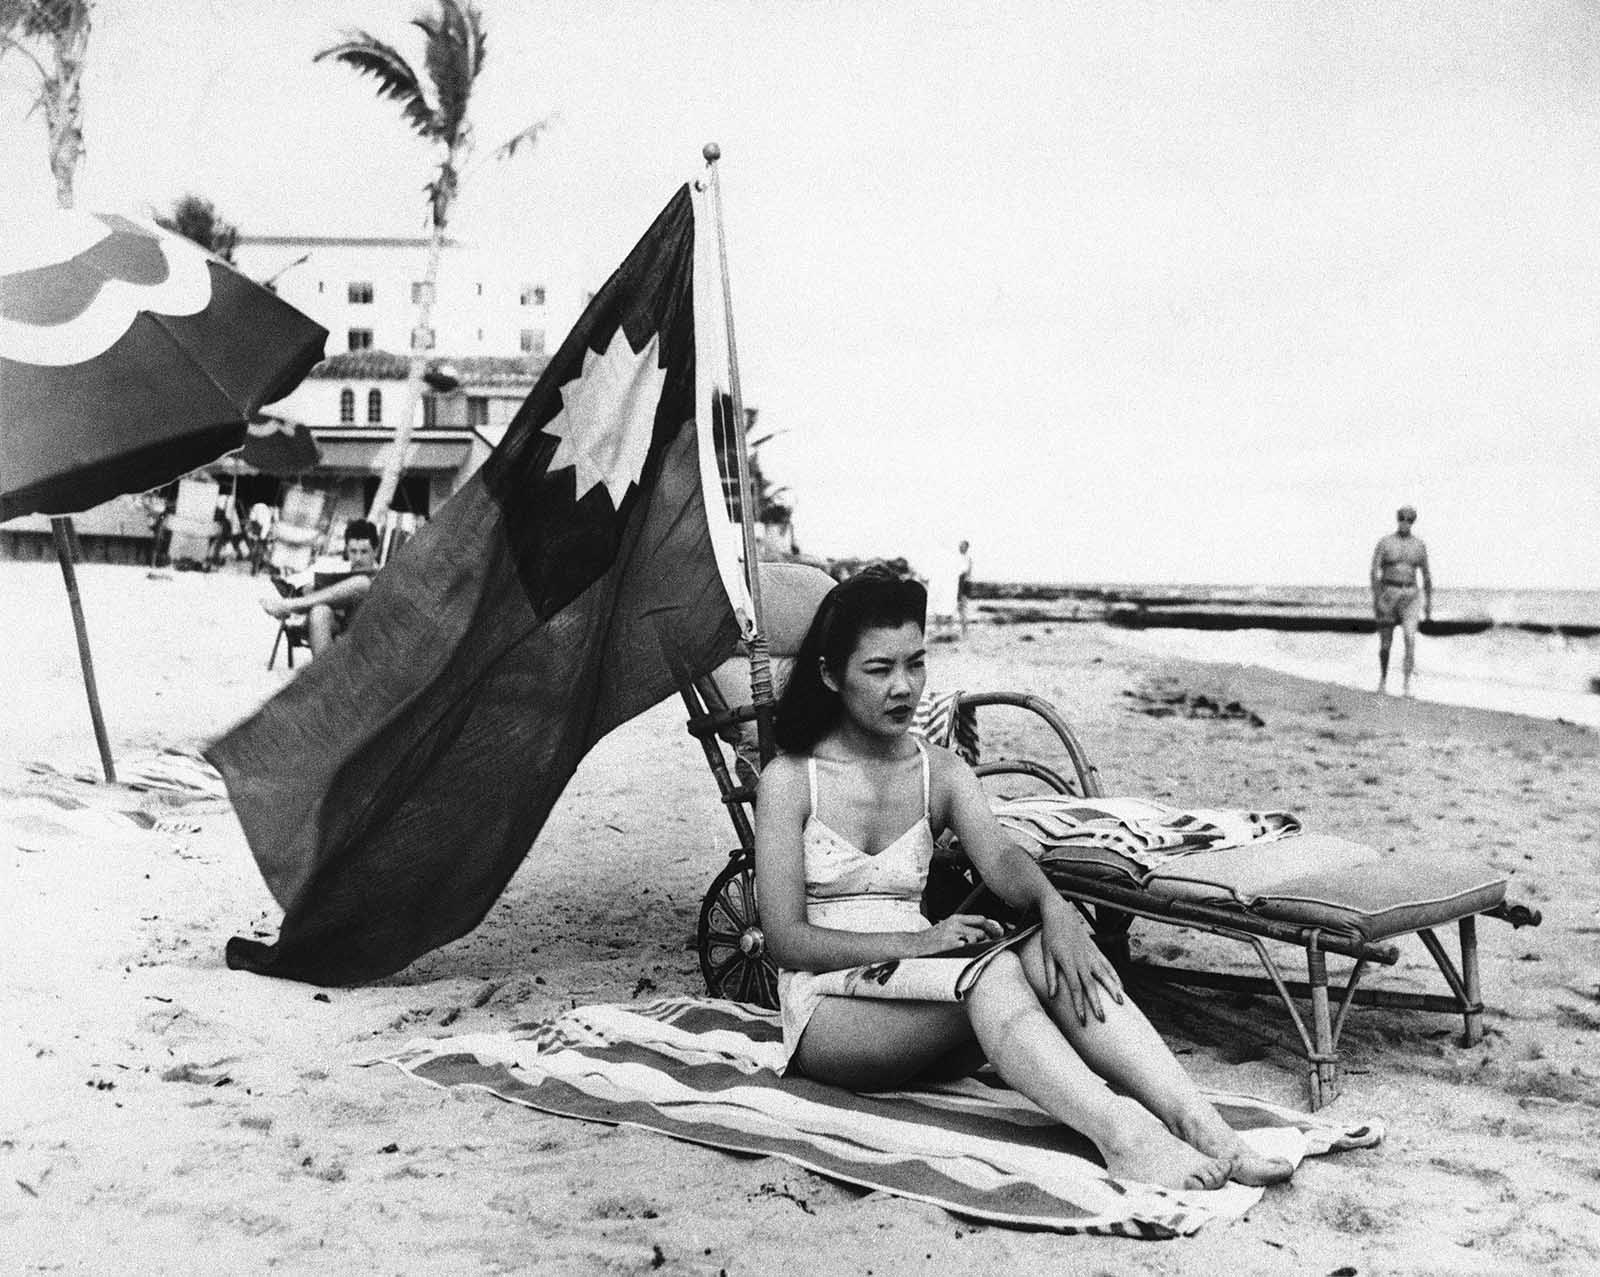 Ruth Lee, a hostess at a Chinese restaurant, flies a Chinese flag so she isn't mistaken for Japanese when she sunbathes on her days off in Miami, in the wake of the attack on Pearl Harbor, Dec. 15, 1941. The flag shown here is the flag of Nationalist China which went into self imposed exile to the island of Taiwan after the Communist revolution. This flag is now the flag of Taiwan.